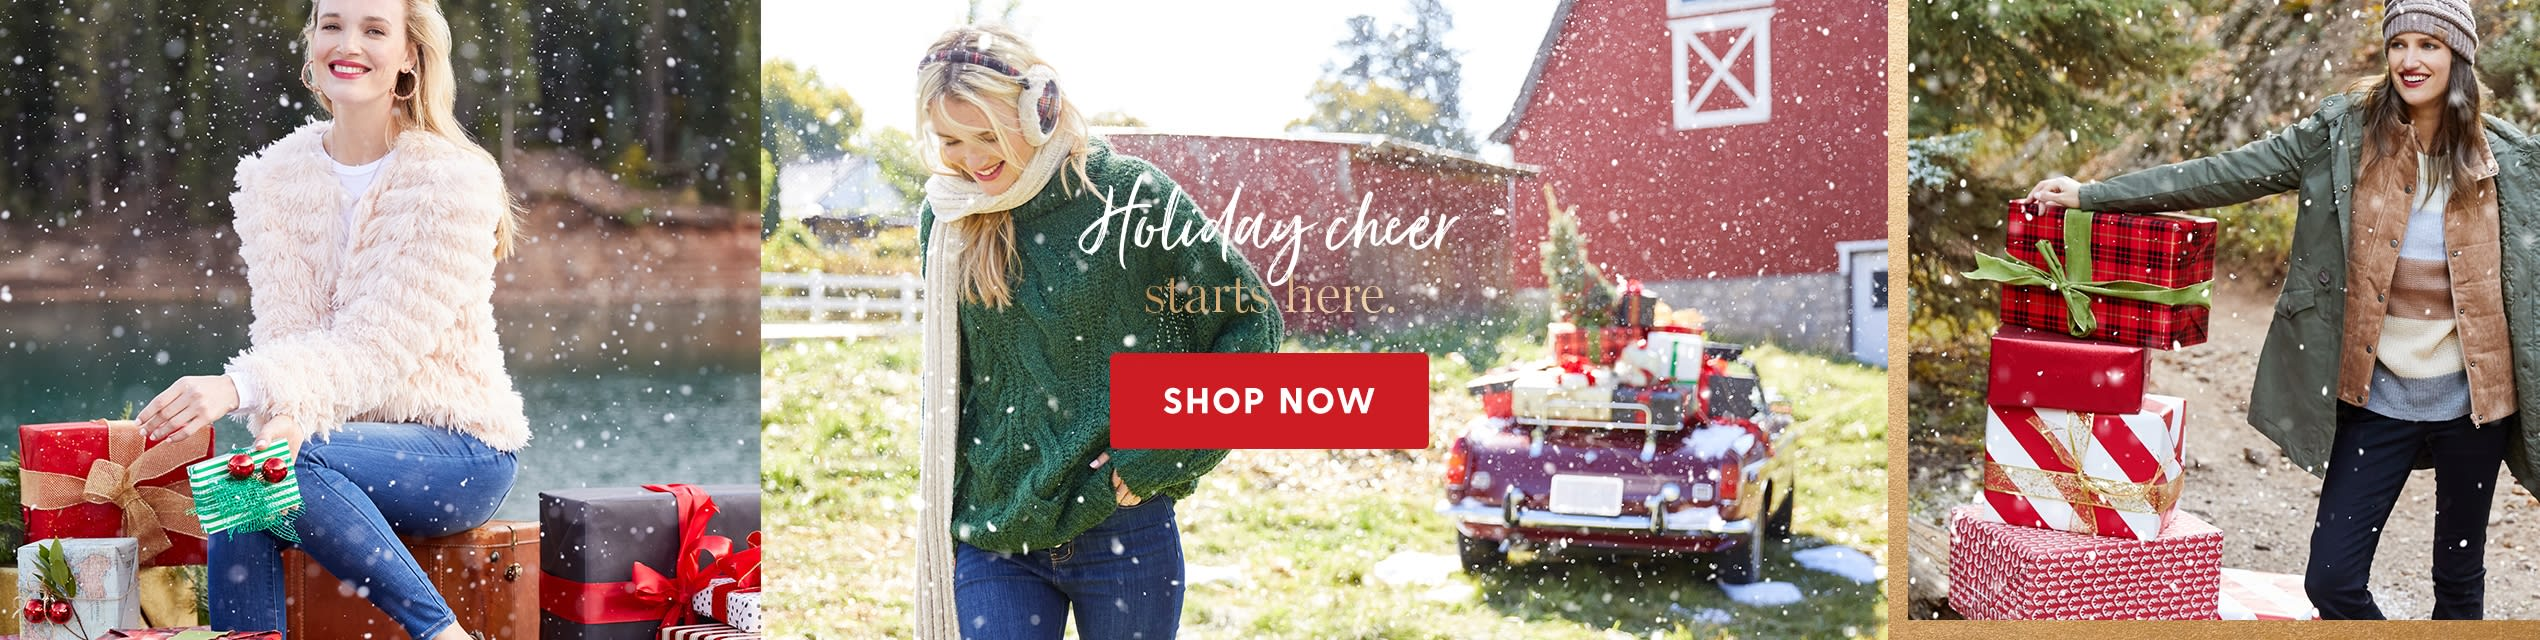 Holiday cheer starts here. Shop Now